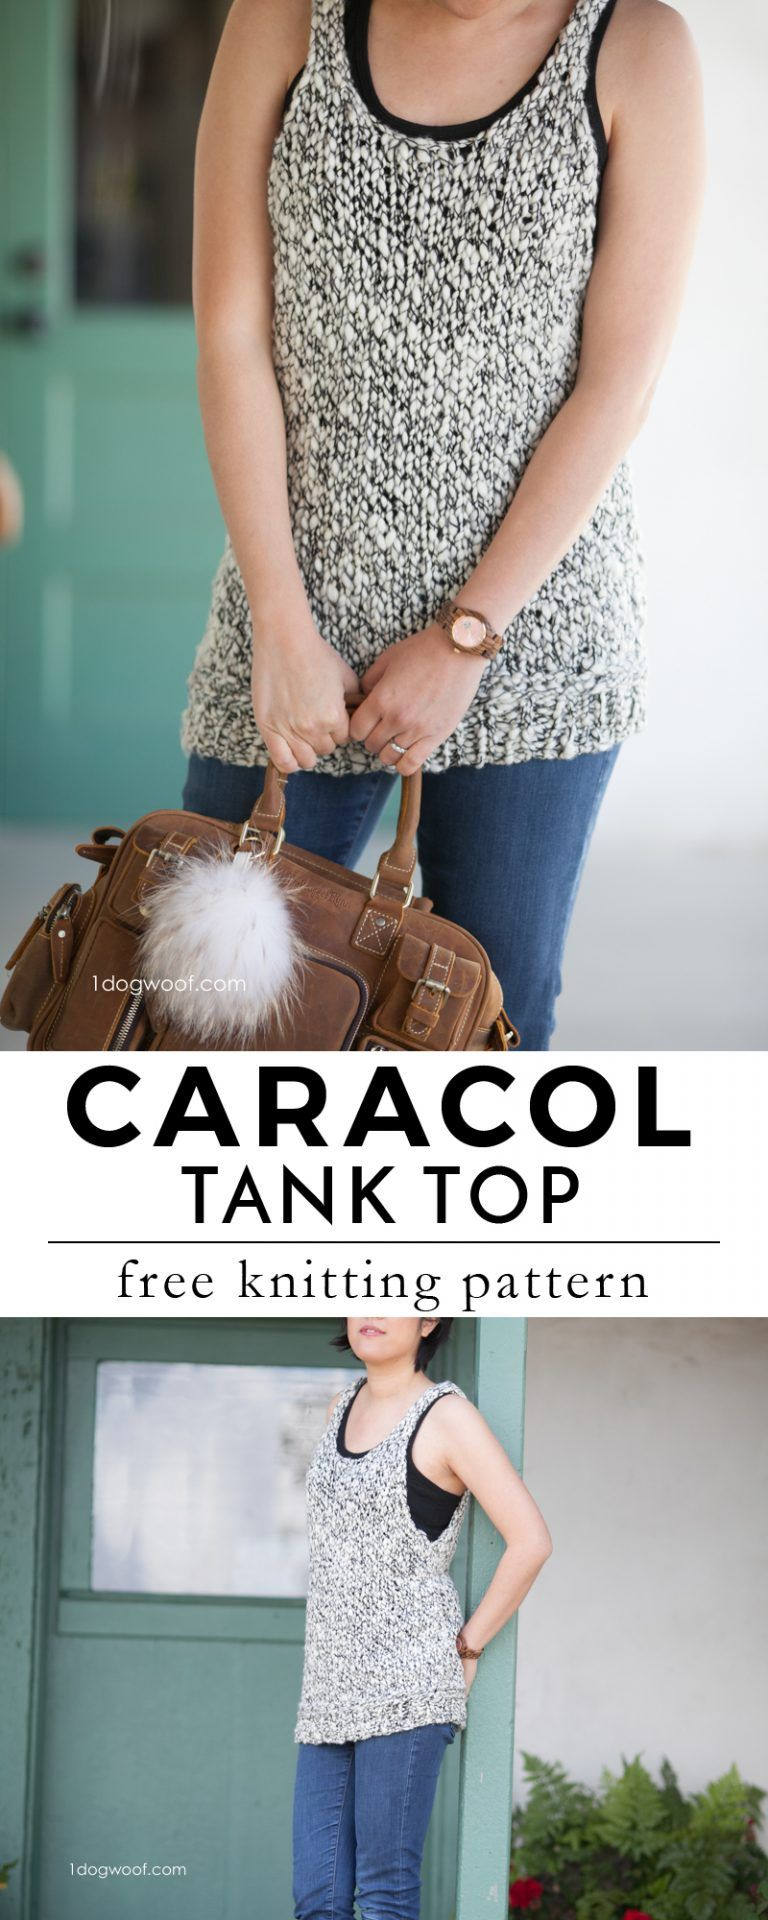 Caracol Tank Top Free Knitting Pattern by One Dog Woof